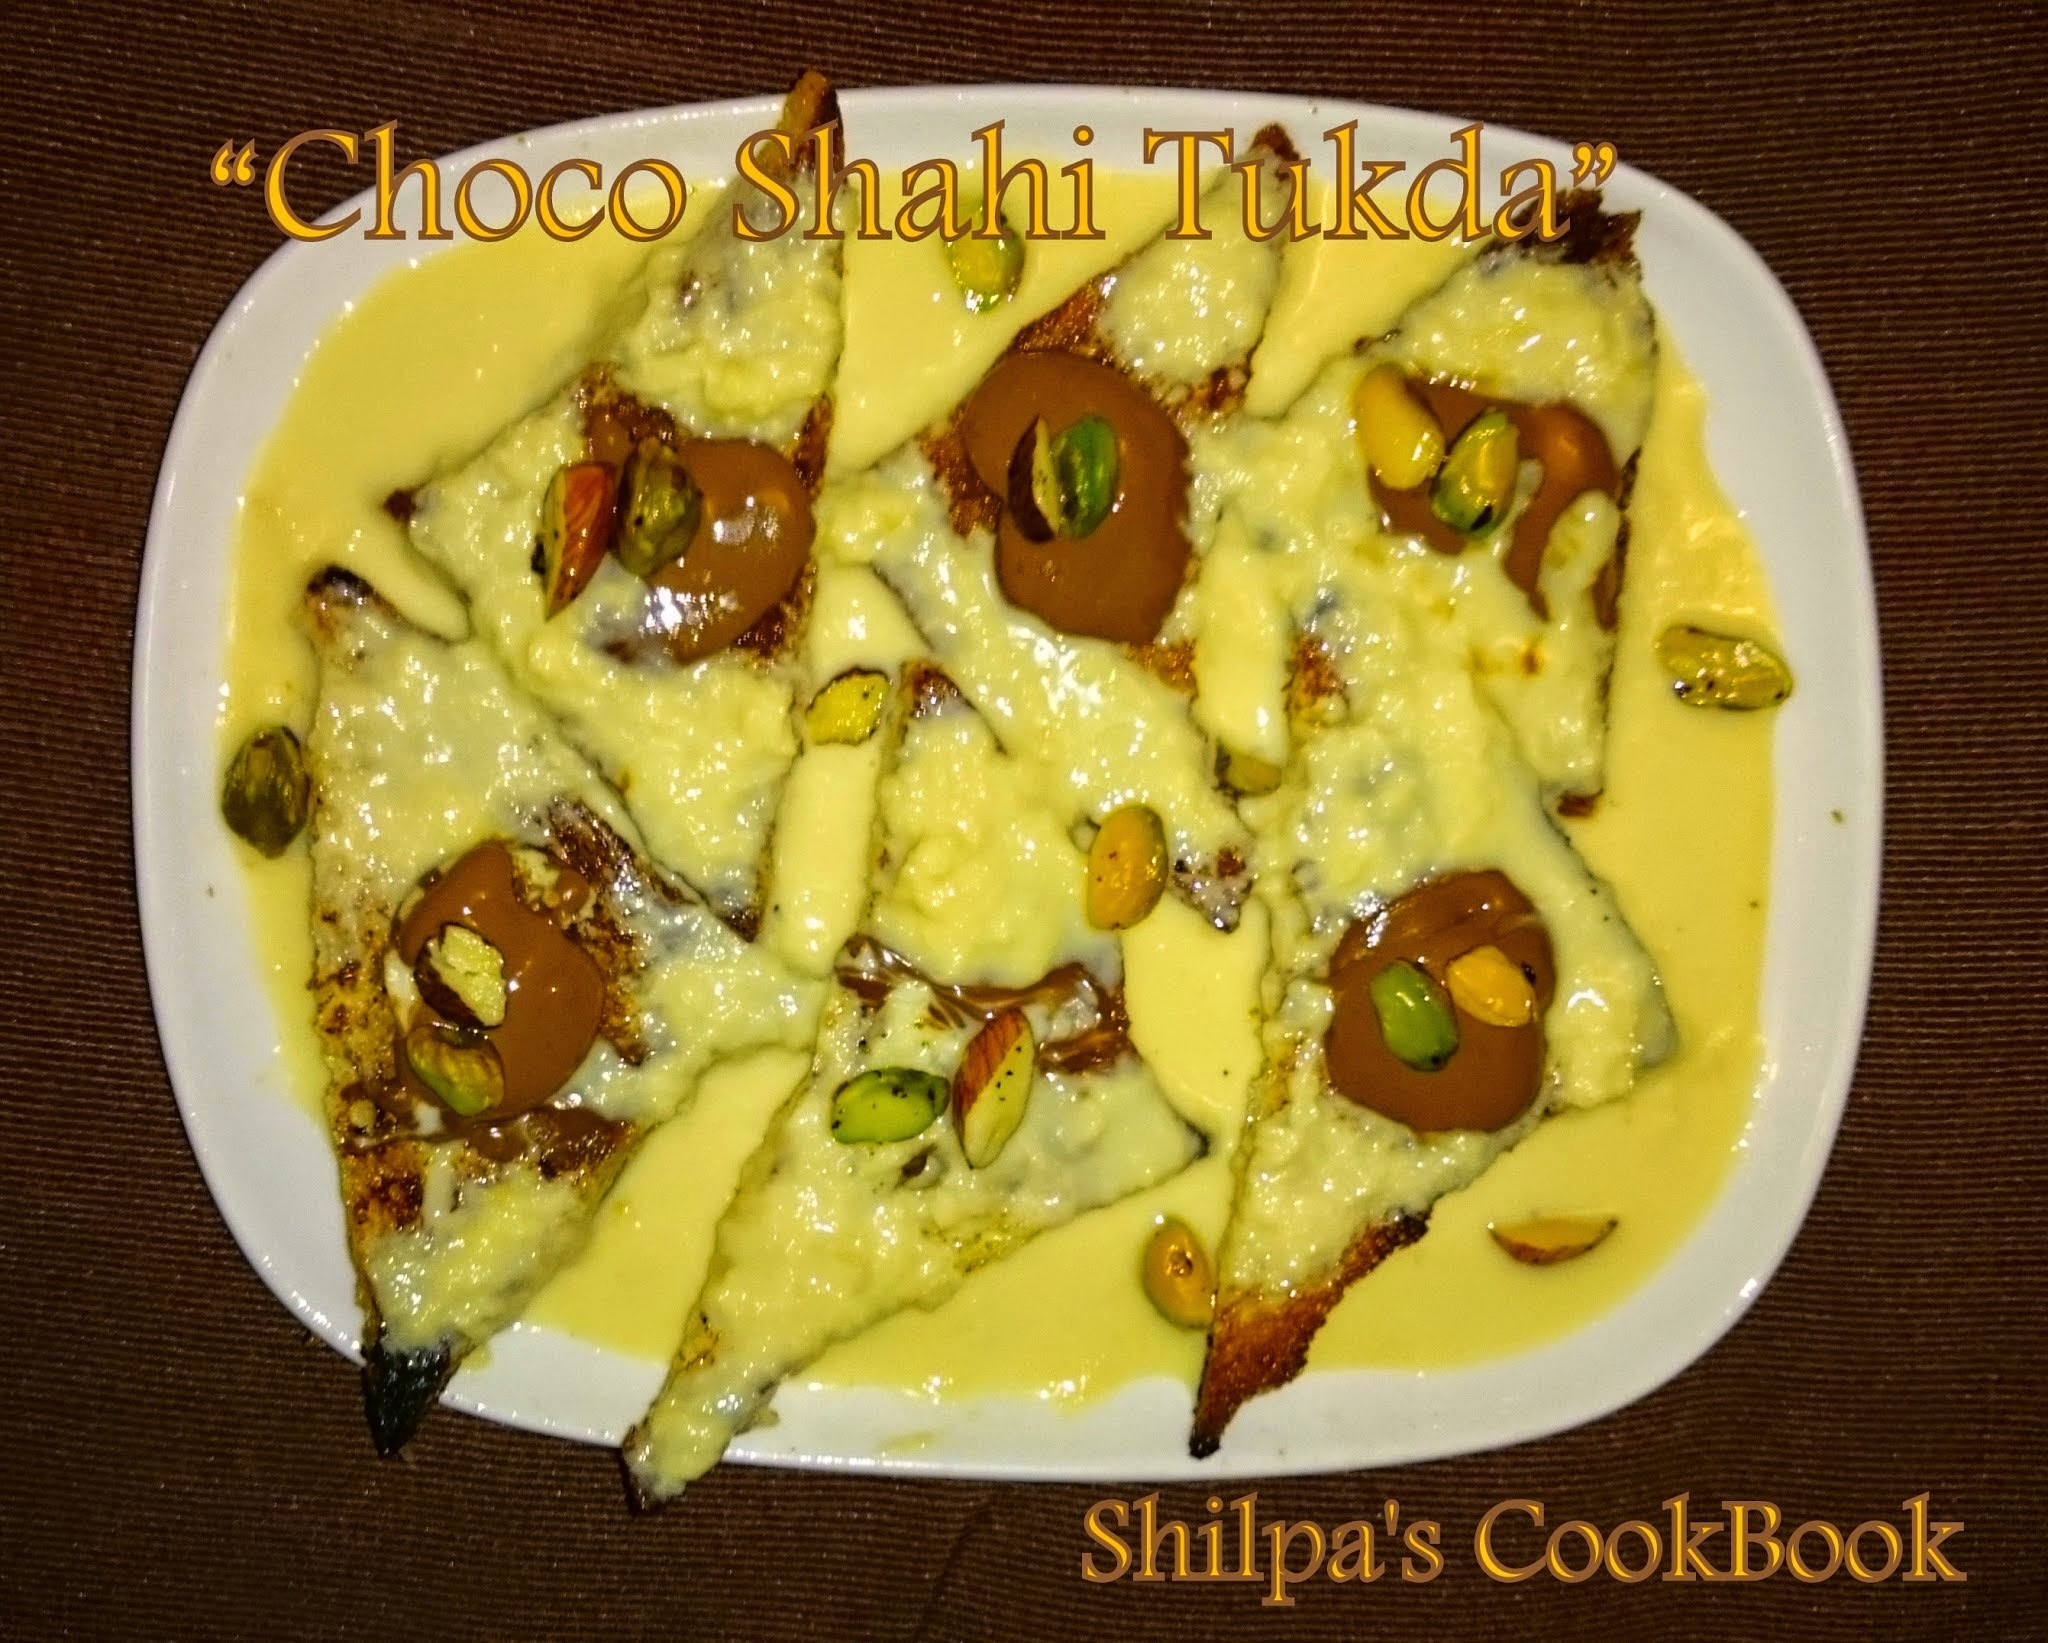 "3 years of Blogging recipes.... ........ ......... ........ ......... ......    #403 - Special treat ""Choco Shahi Tukda"""